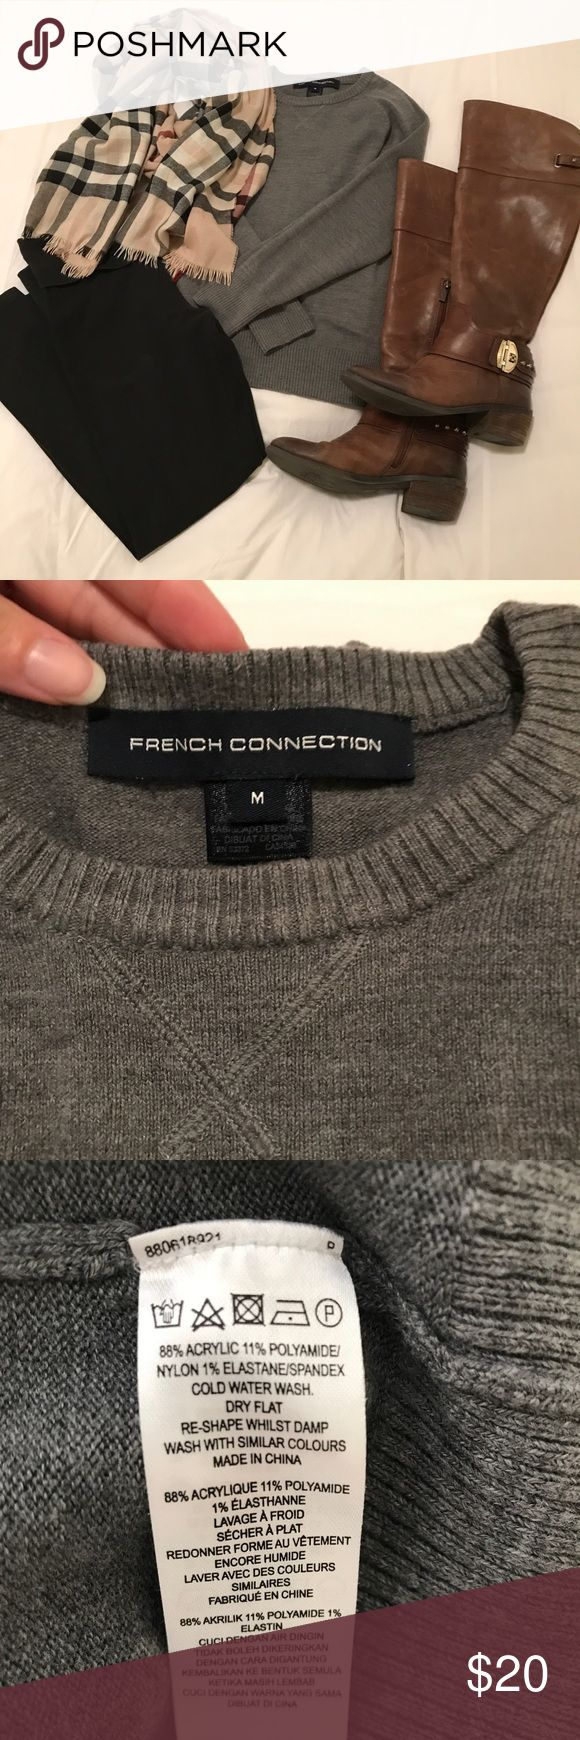 French Connection Sweater French Connection gray sweater.  Great soft material.  Very versatile.   Pairs great with skinny jeans, boots & a scarf or with a great statement necklace and skirt. French Connection Sweaters Crew & Scoop Necks